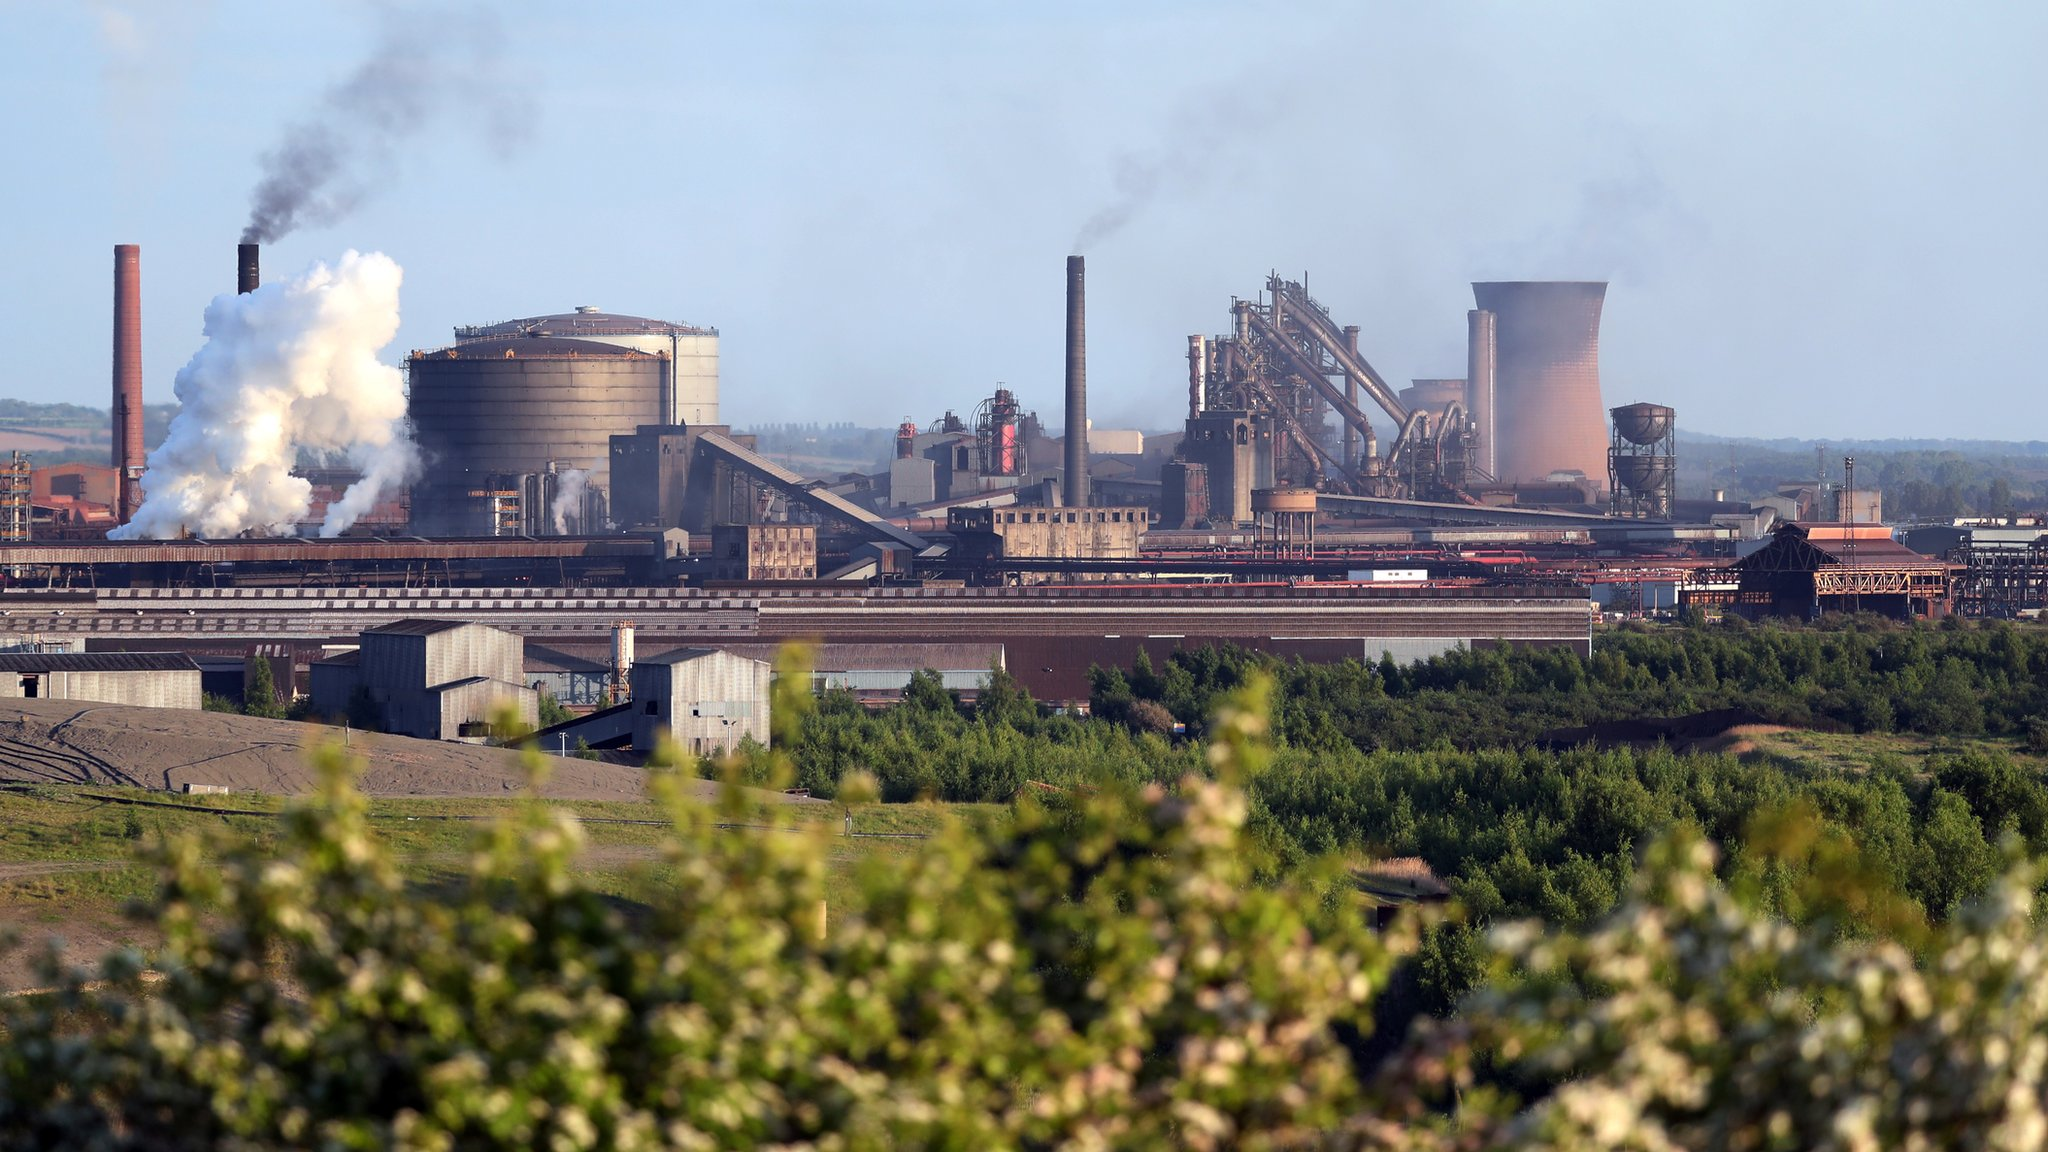 British Steel insolvency endangers 5,000 jobs